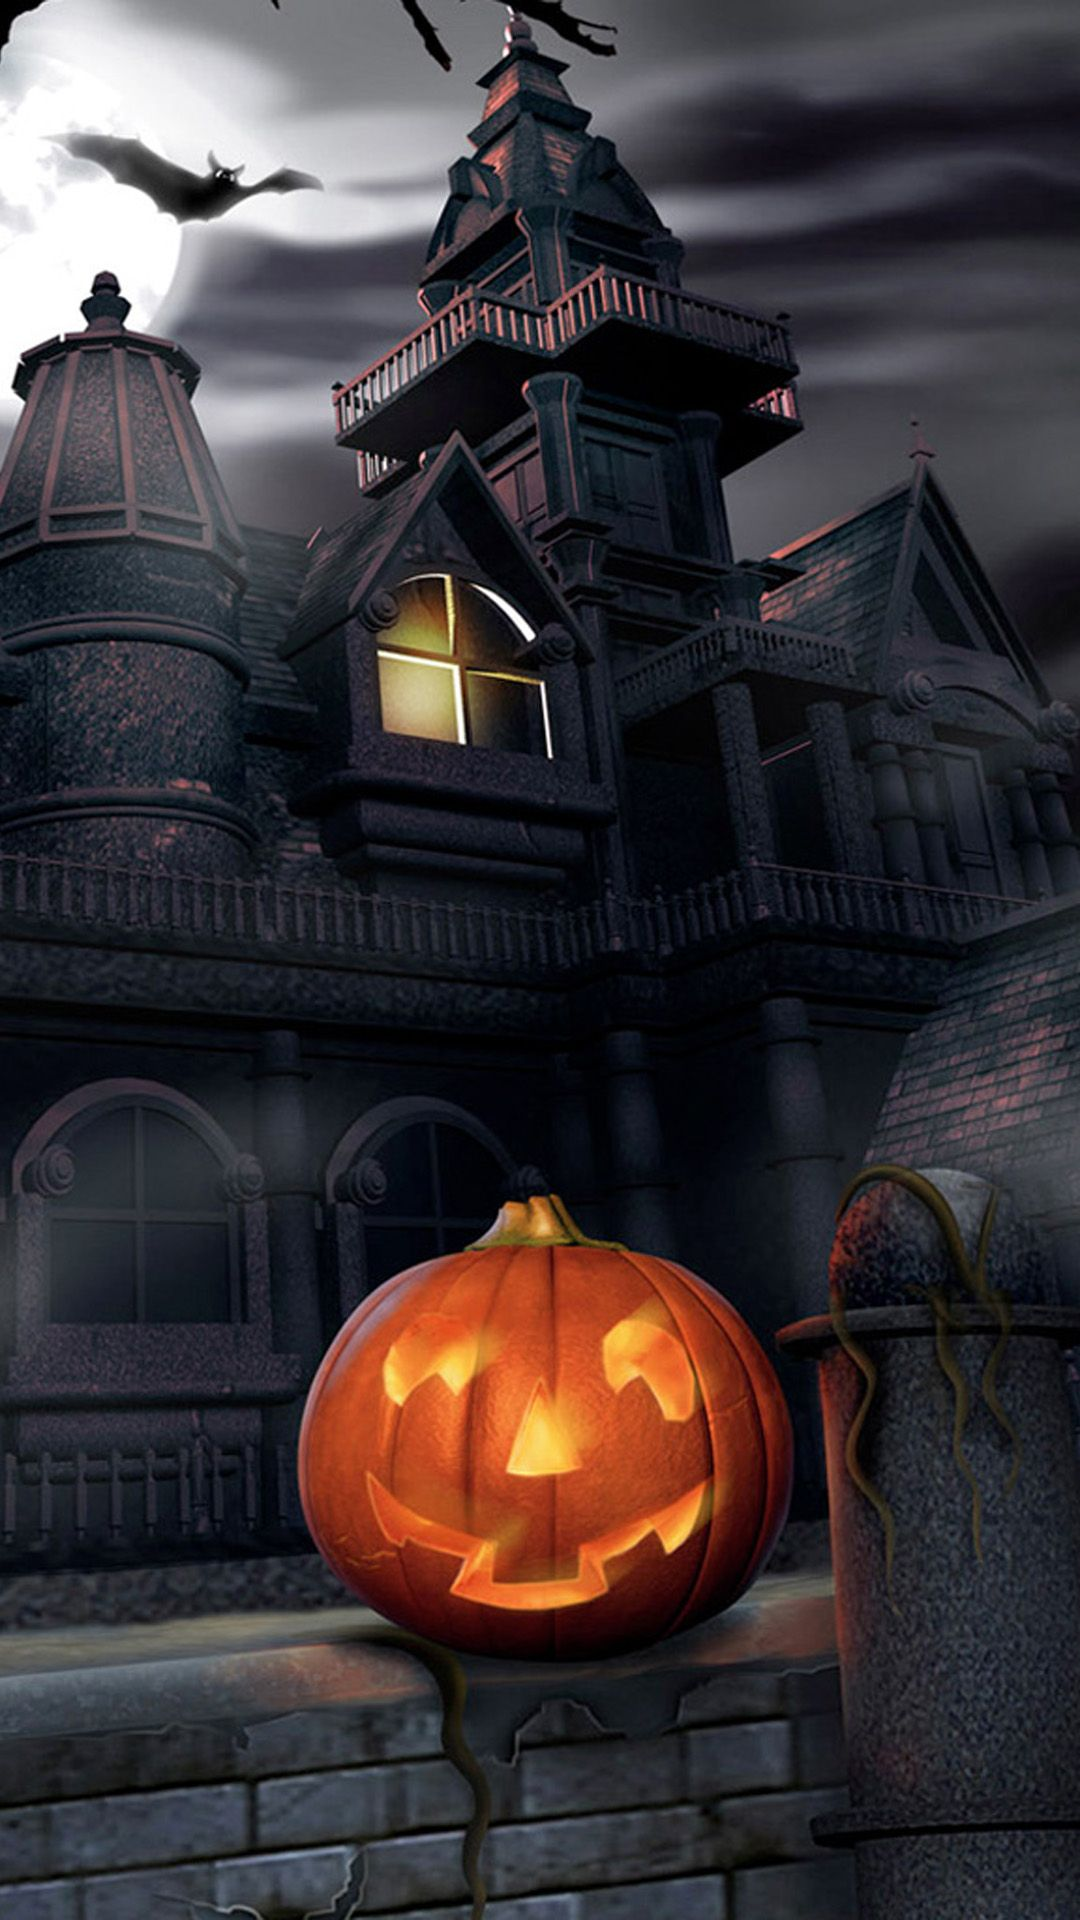 Halloween Happy iphone wallpaper pictures recommend dress for on every day in 2019